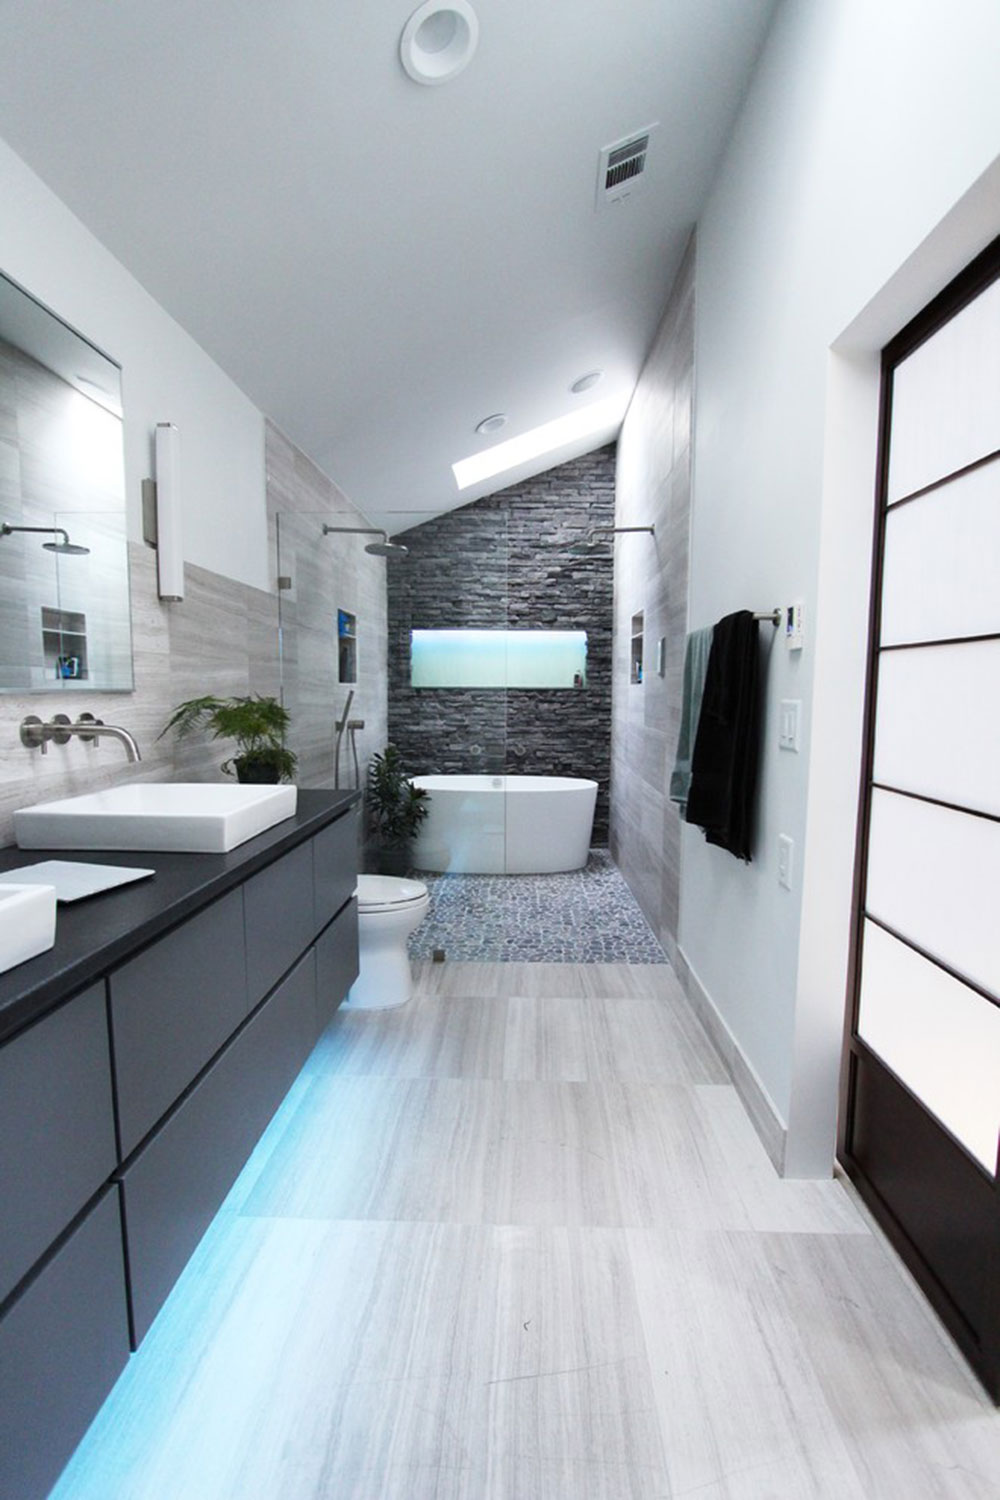 Bathroom Tiles Examples brilliant bathroom remodel examples examples r inside image